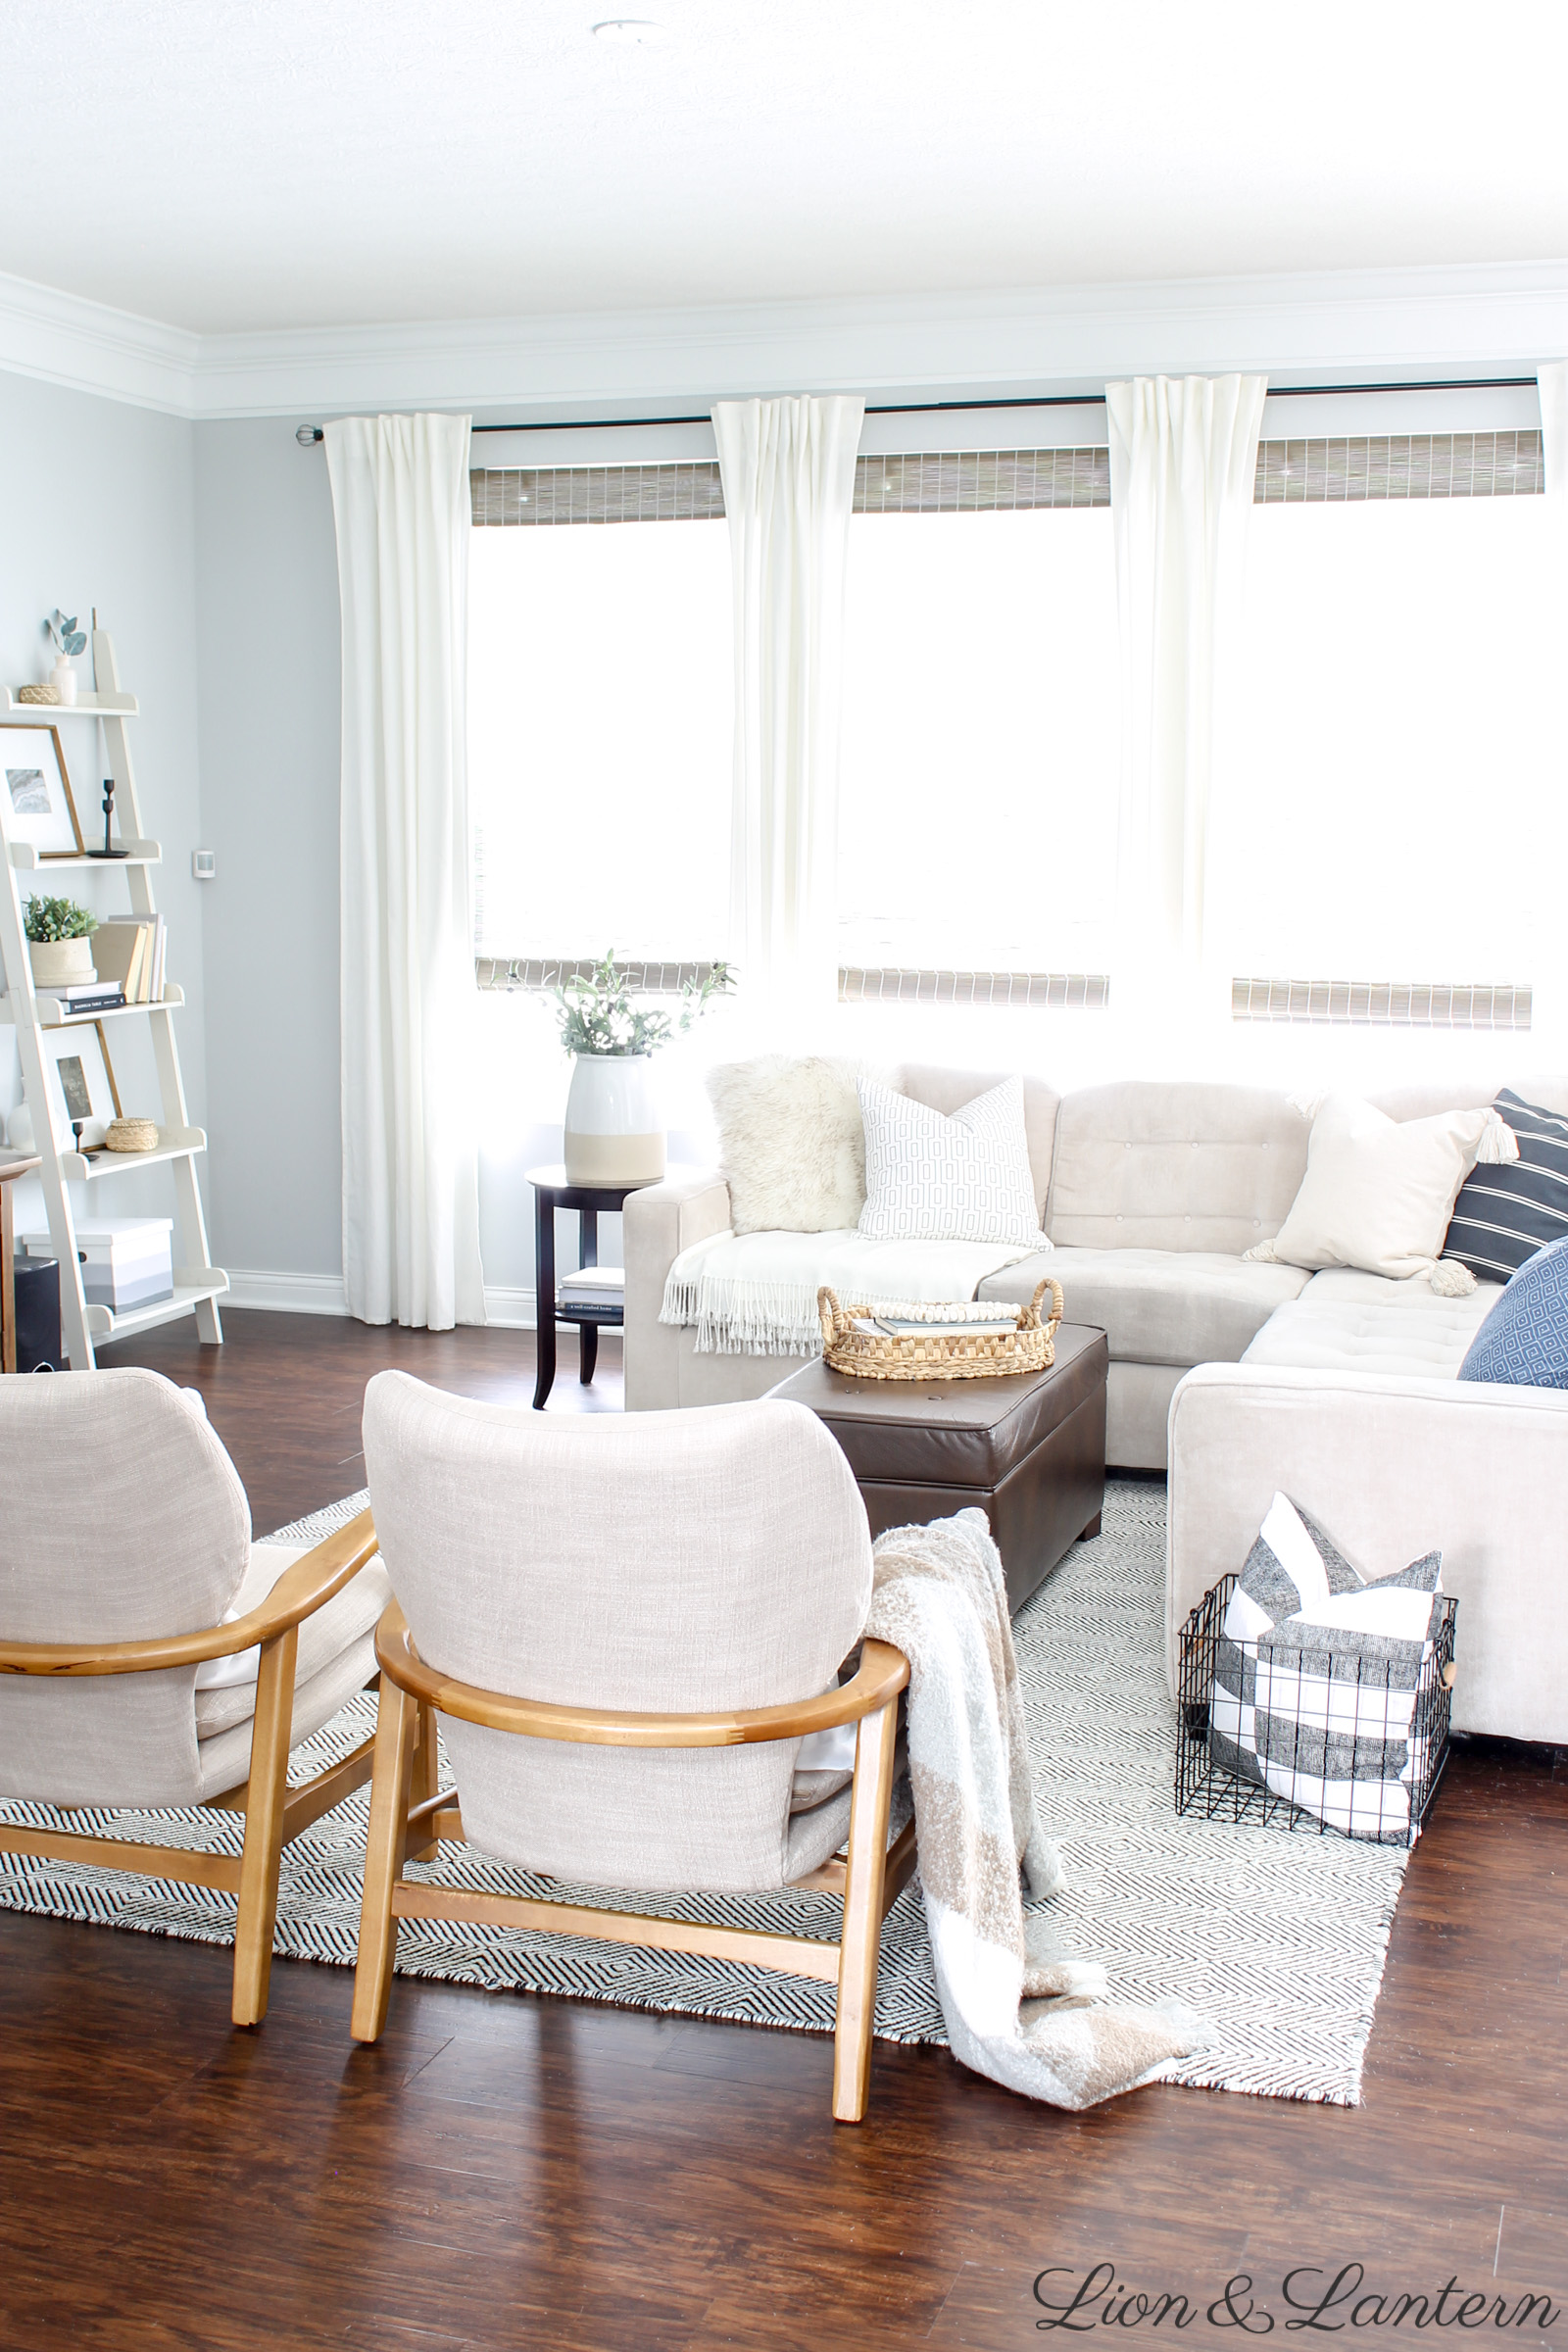 Cozy Coastal Living Room at LionAndLantern.com | coastal farmhouse, neutral living room, bright and airy, cream sofa, ladder shelf, budget decor, modern wood accent chair, modern farmhouse